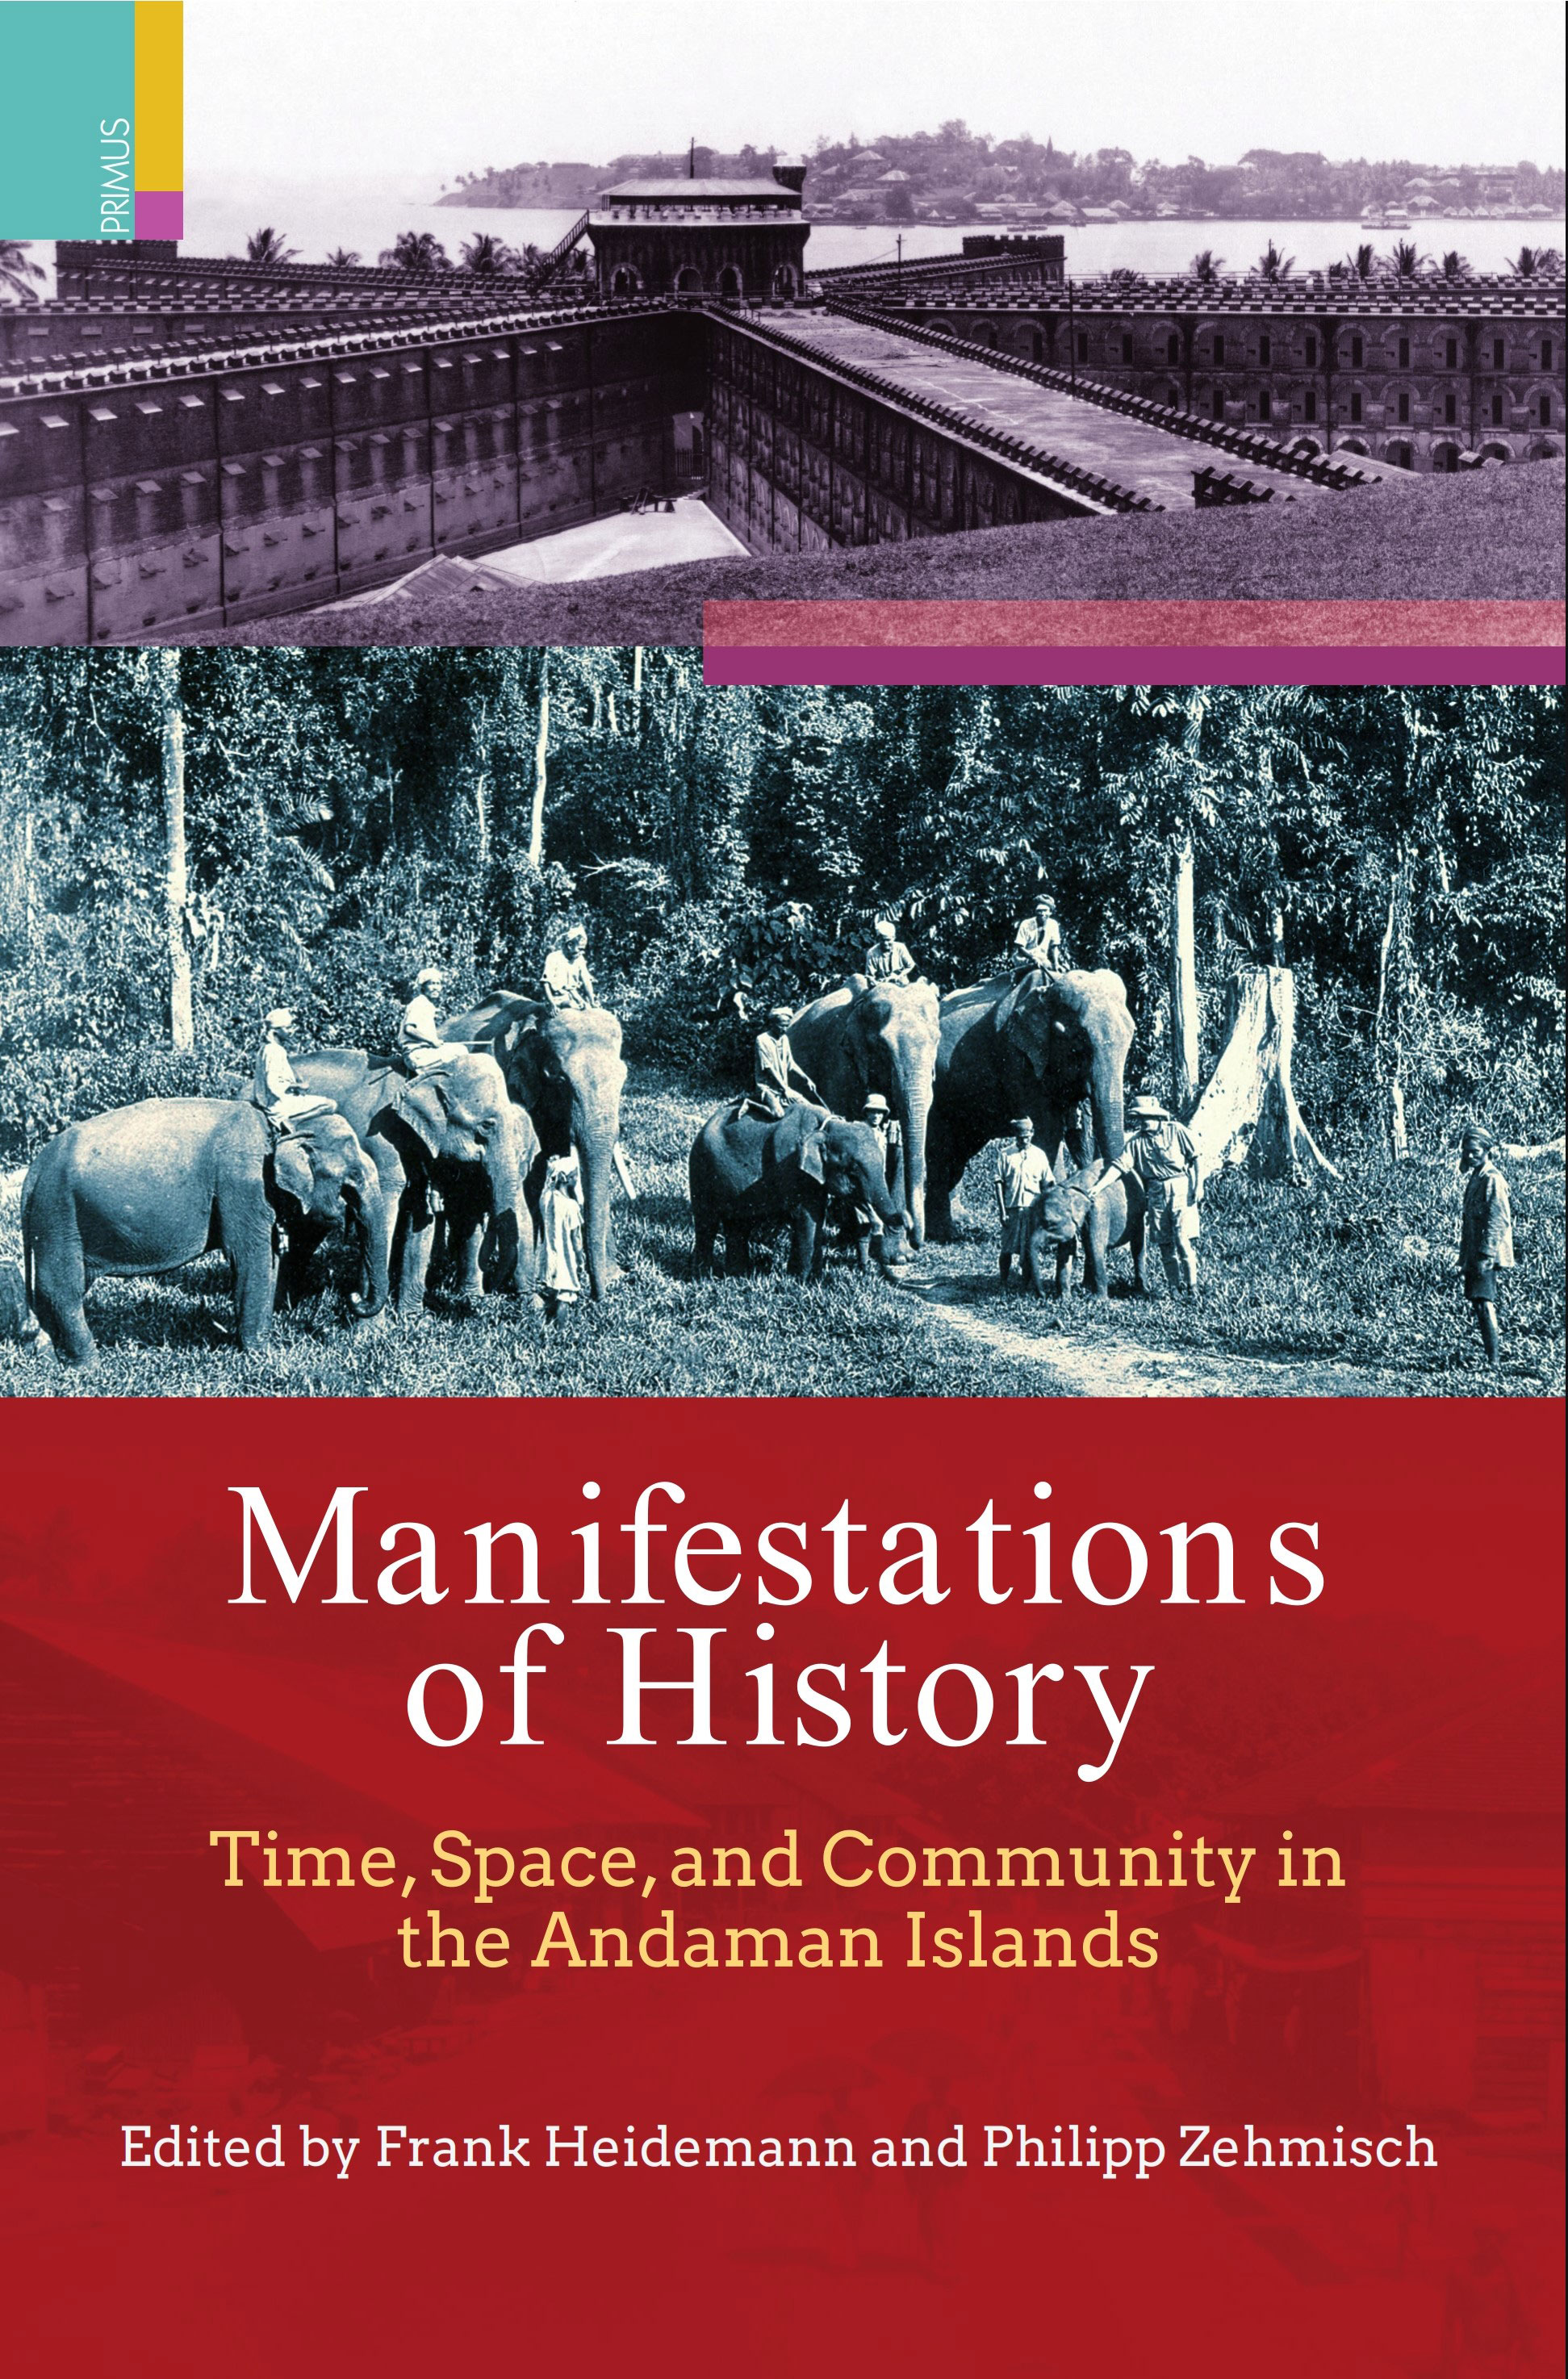 manifestations-of-history_w